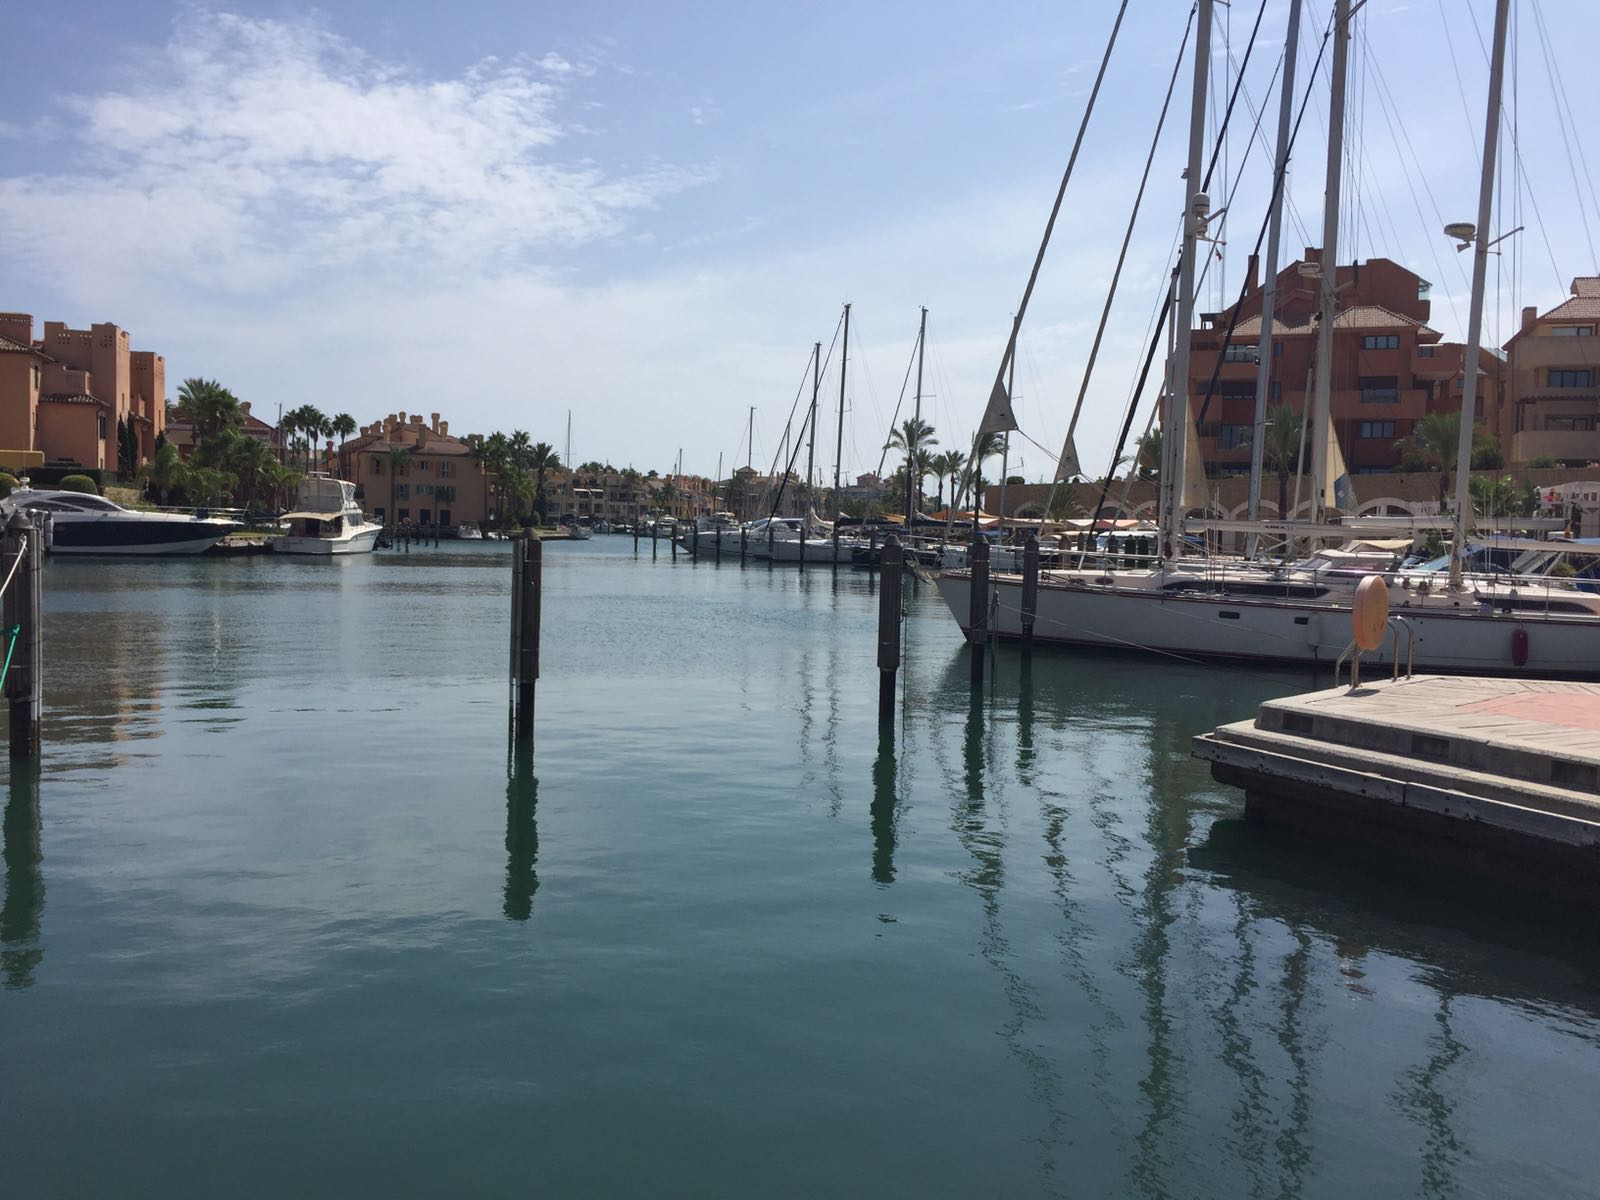 Puerto deportivo Sotogrande, where we hauled the boat out for a few days...